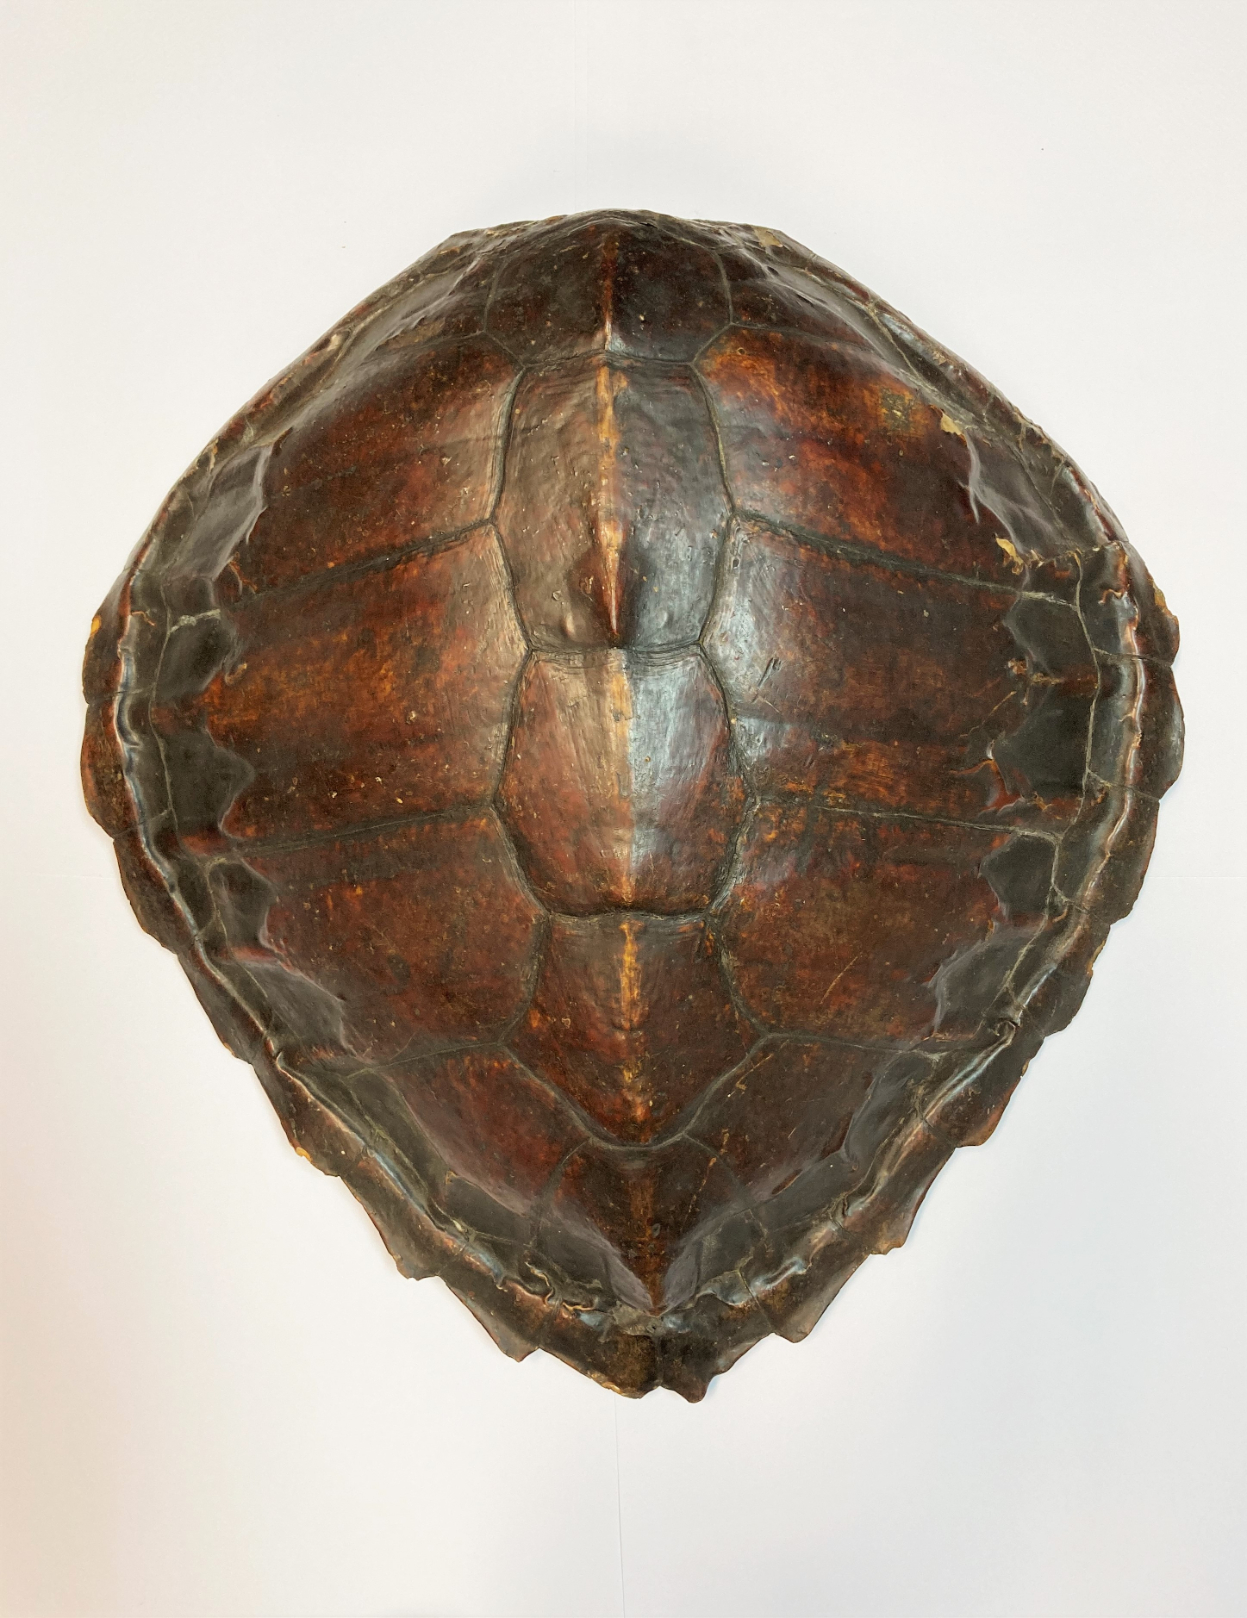 ˜Ⓦ A TURTLE UPPER SHELL^ PROBABLY CHELONIA MYDAS LATE 19TH CENTURY